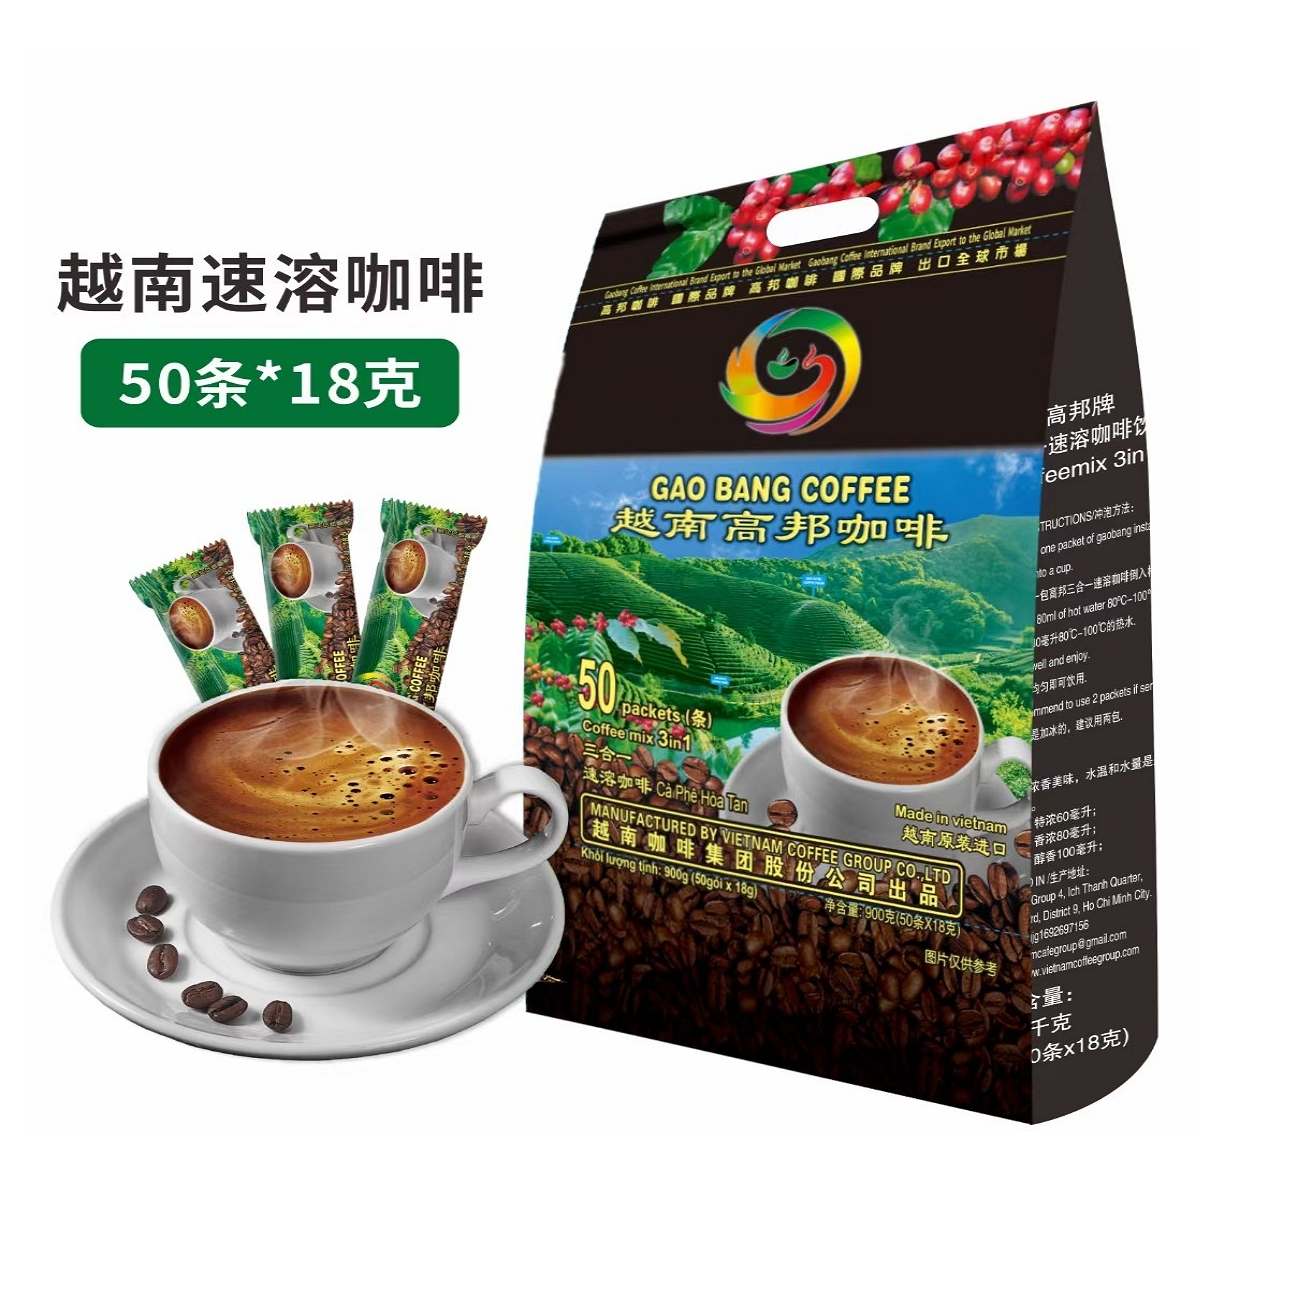 Gaobang Coffee Weasel Mix 3in1with High Quality